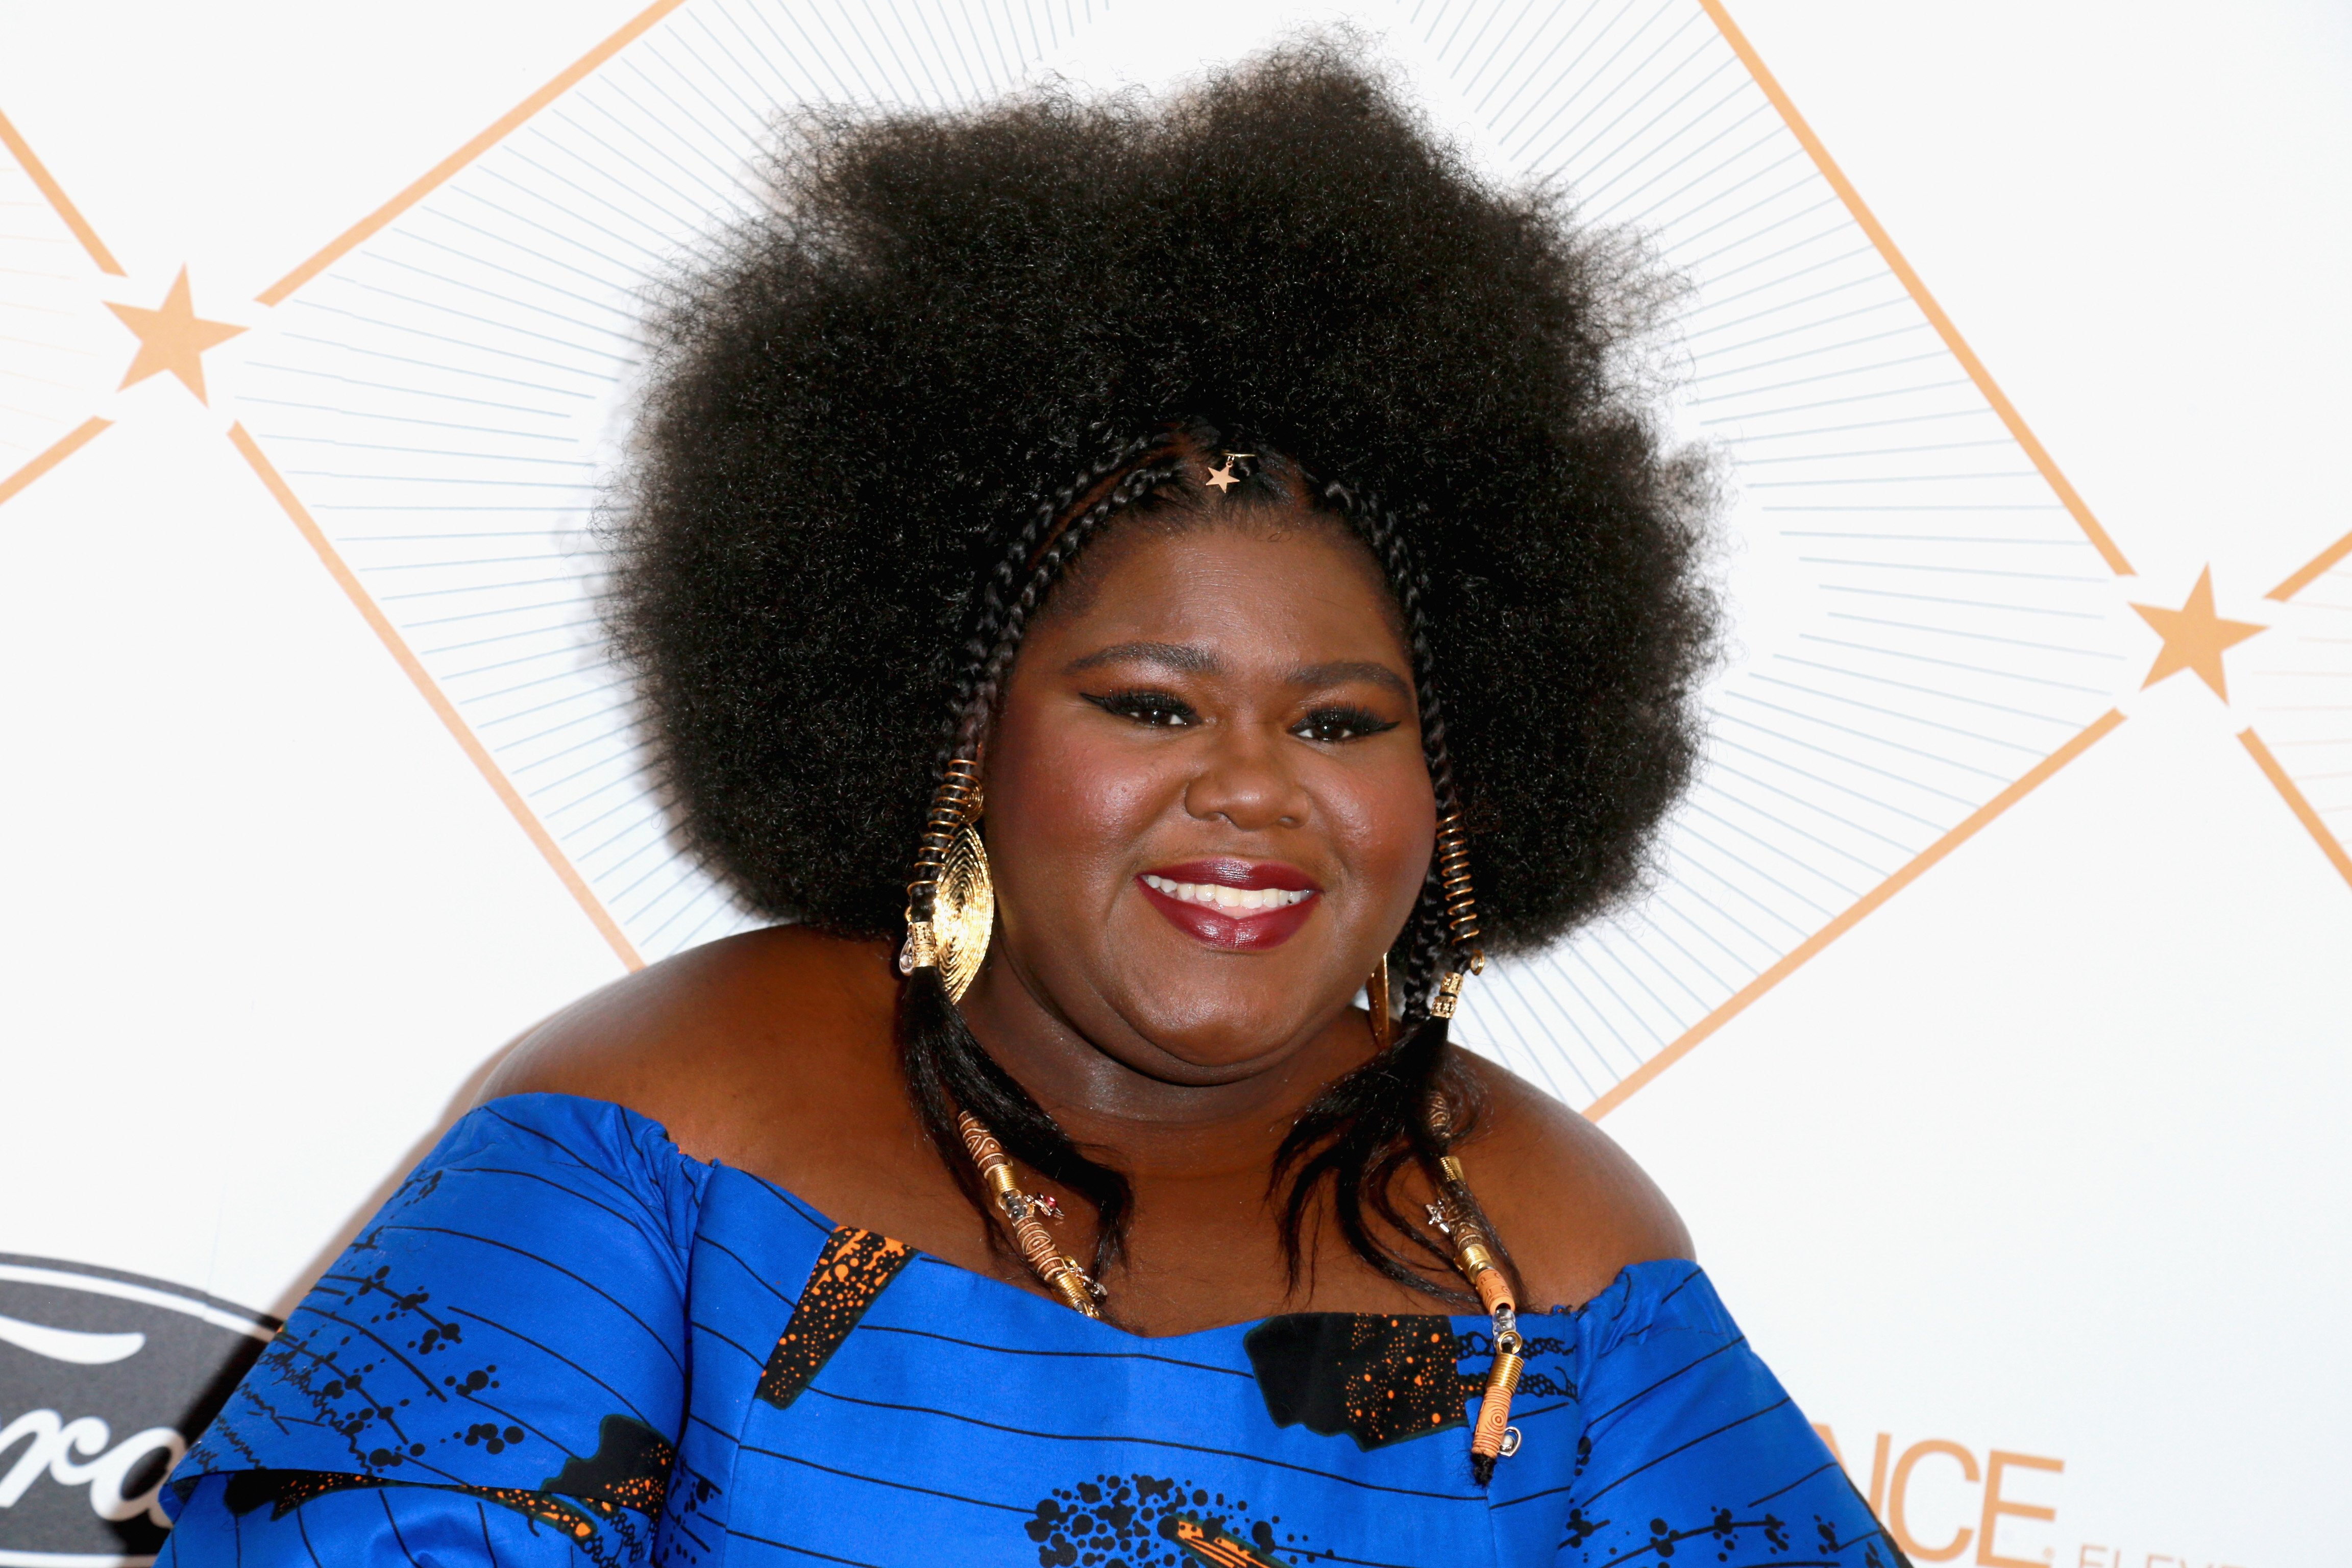 Gabourey Sidibe at the 2018 Essence Black Women In Hollywood Oscars Luncheon on March 1, 2018 in Beverly Hills, California.| Source: Getty Images